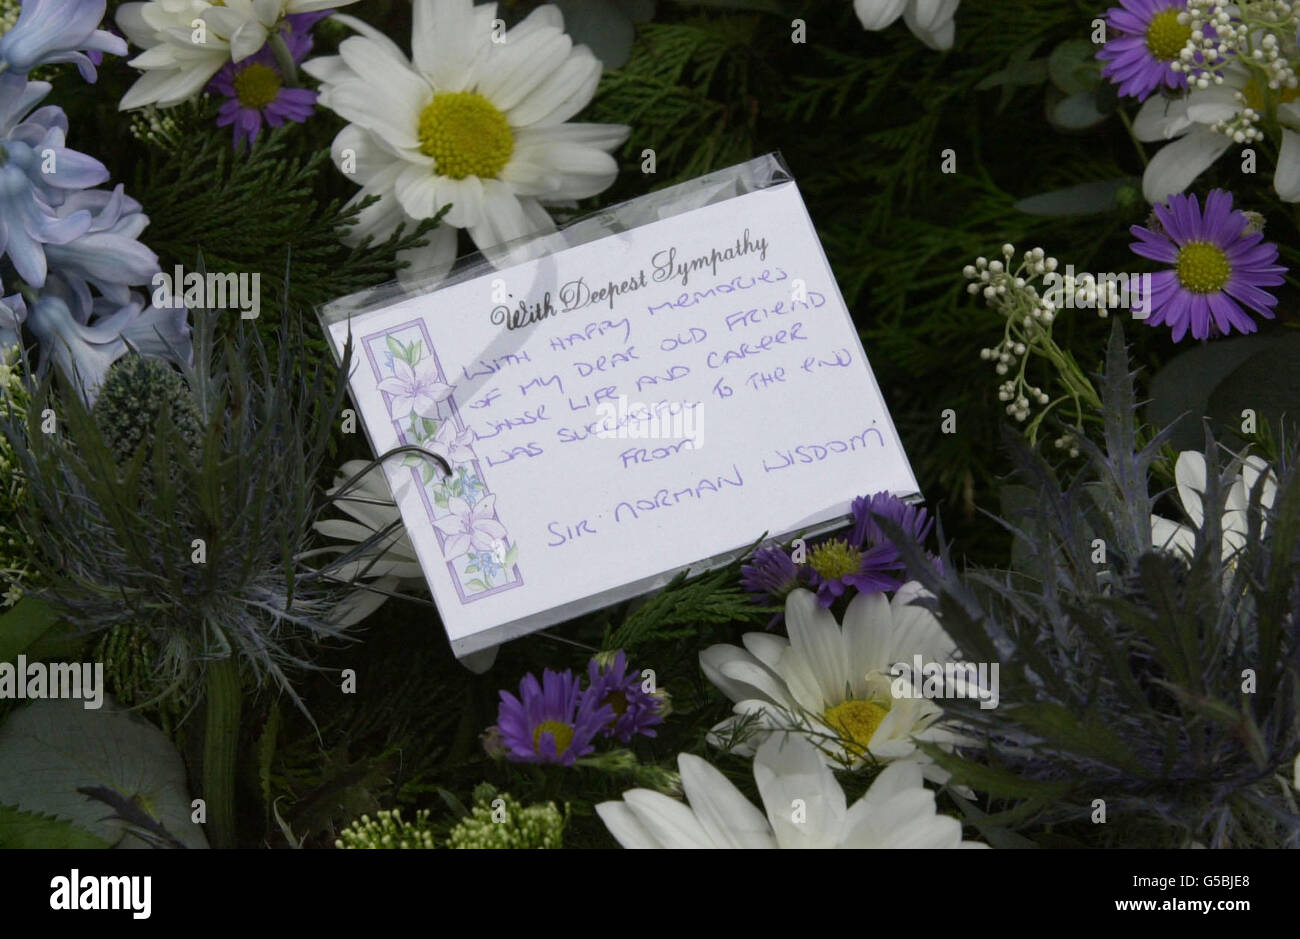 Funeral flowers card stock photos funeral flowers card stock london harry secombe funeral flowers stock image izmirmasajfo Image collections